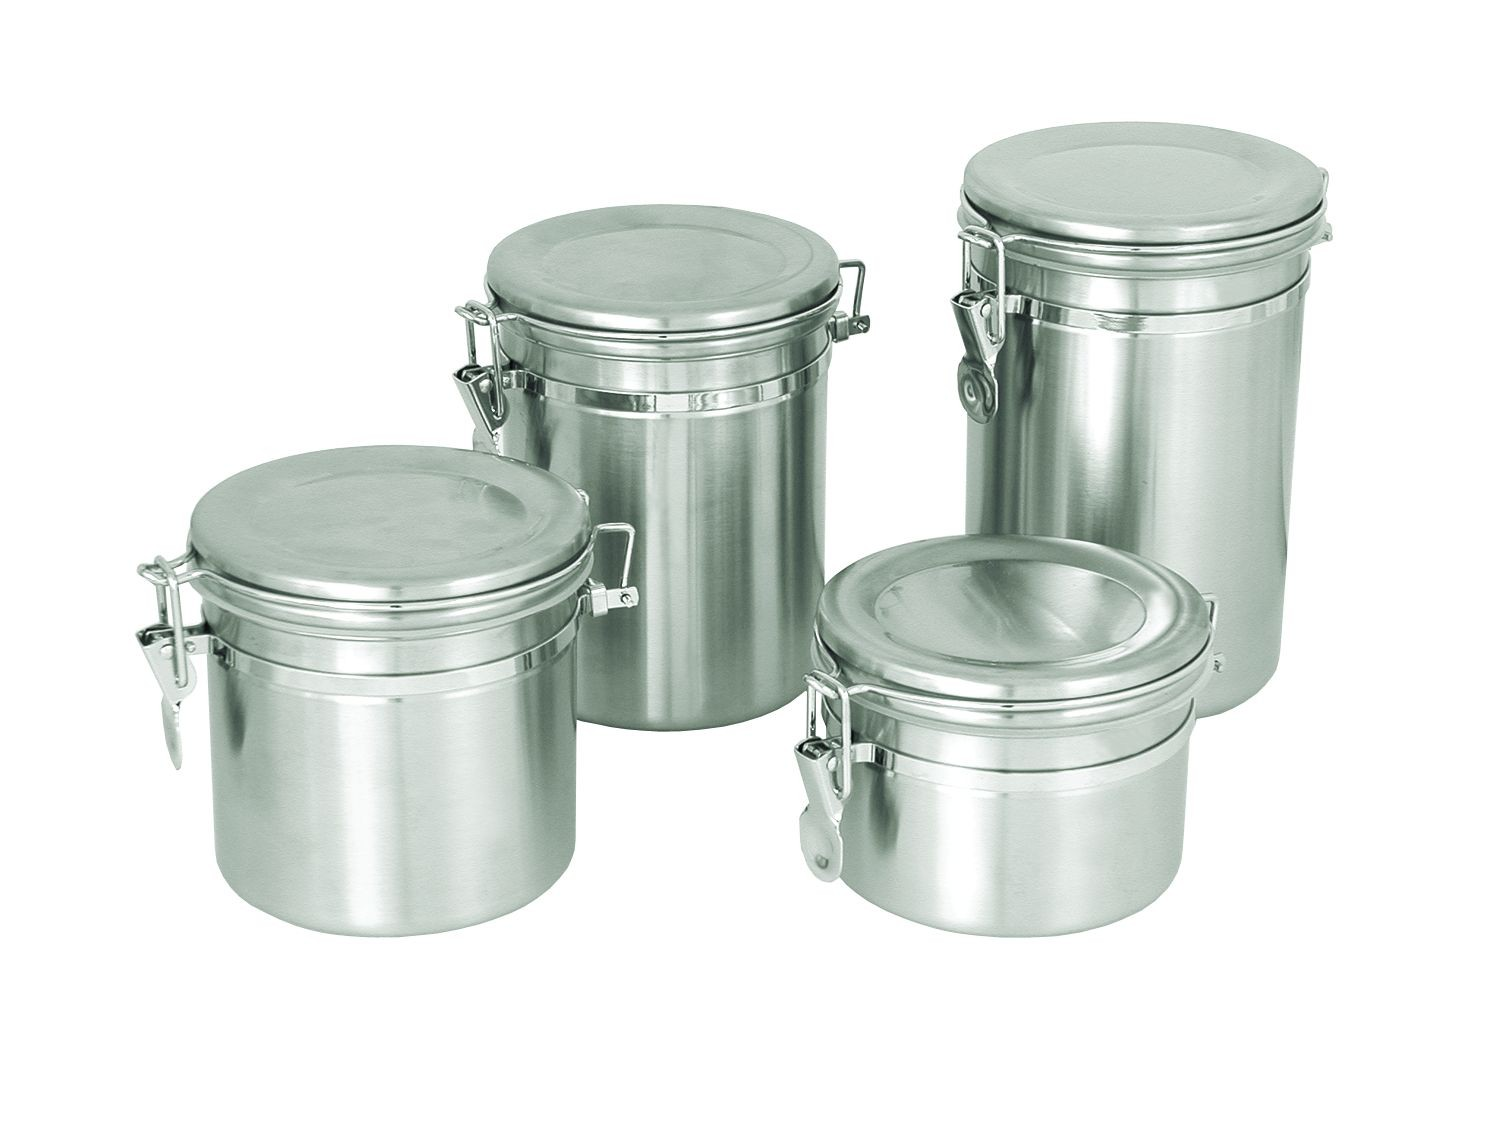 Update International CAN-8SS Canister 70 Oz. with Stainless Steel Lid